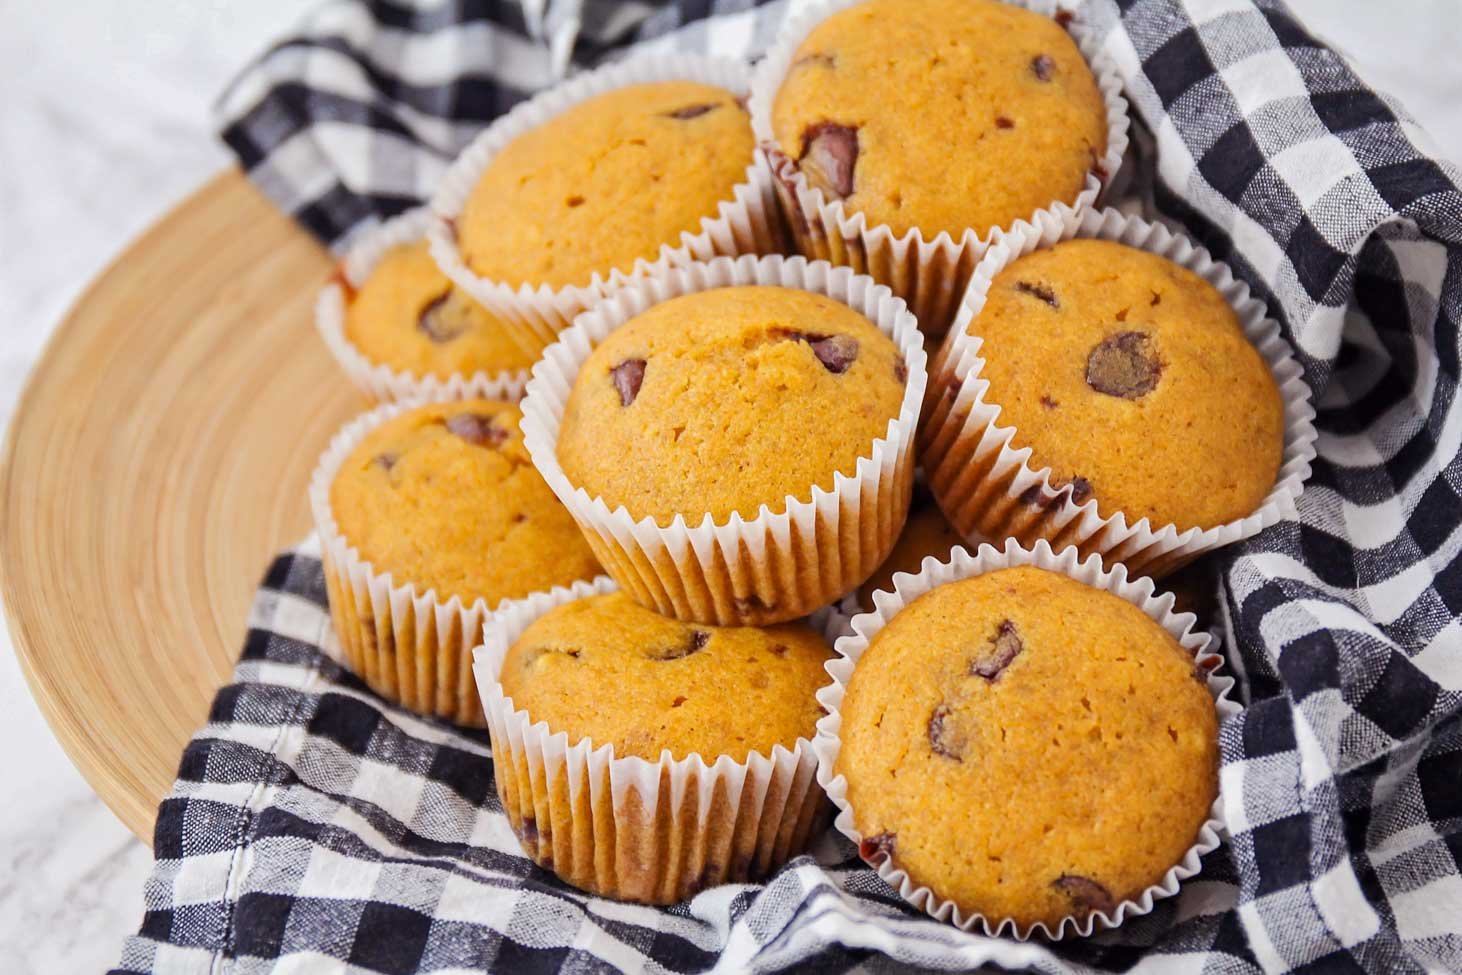 Pumpkin chocolate chip muffins stacked on a dish towel